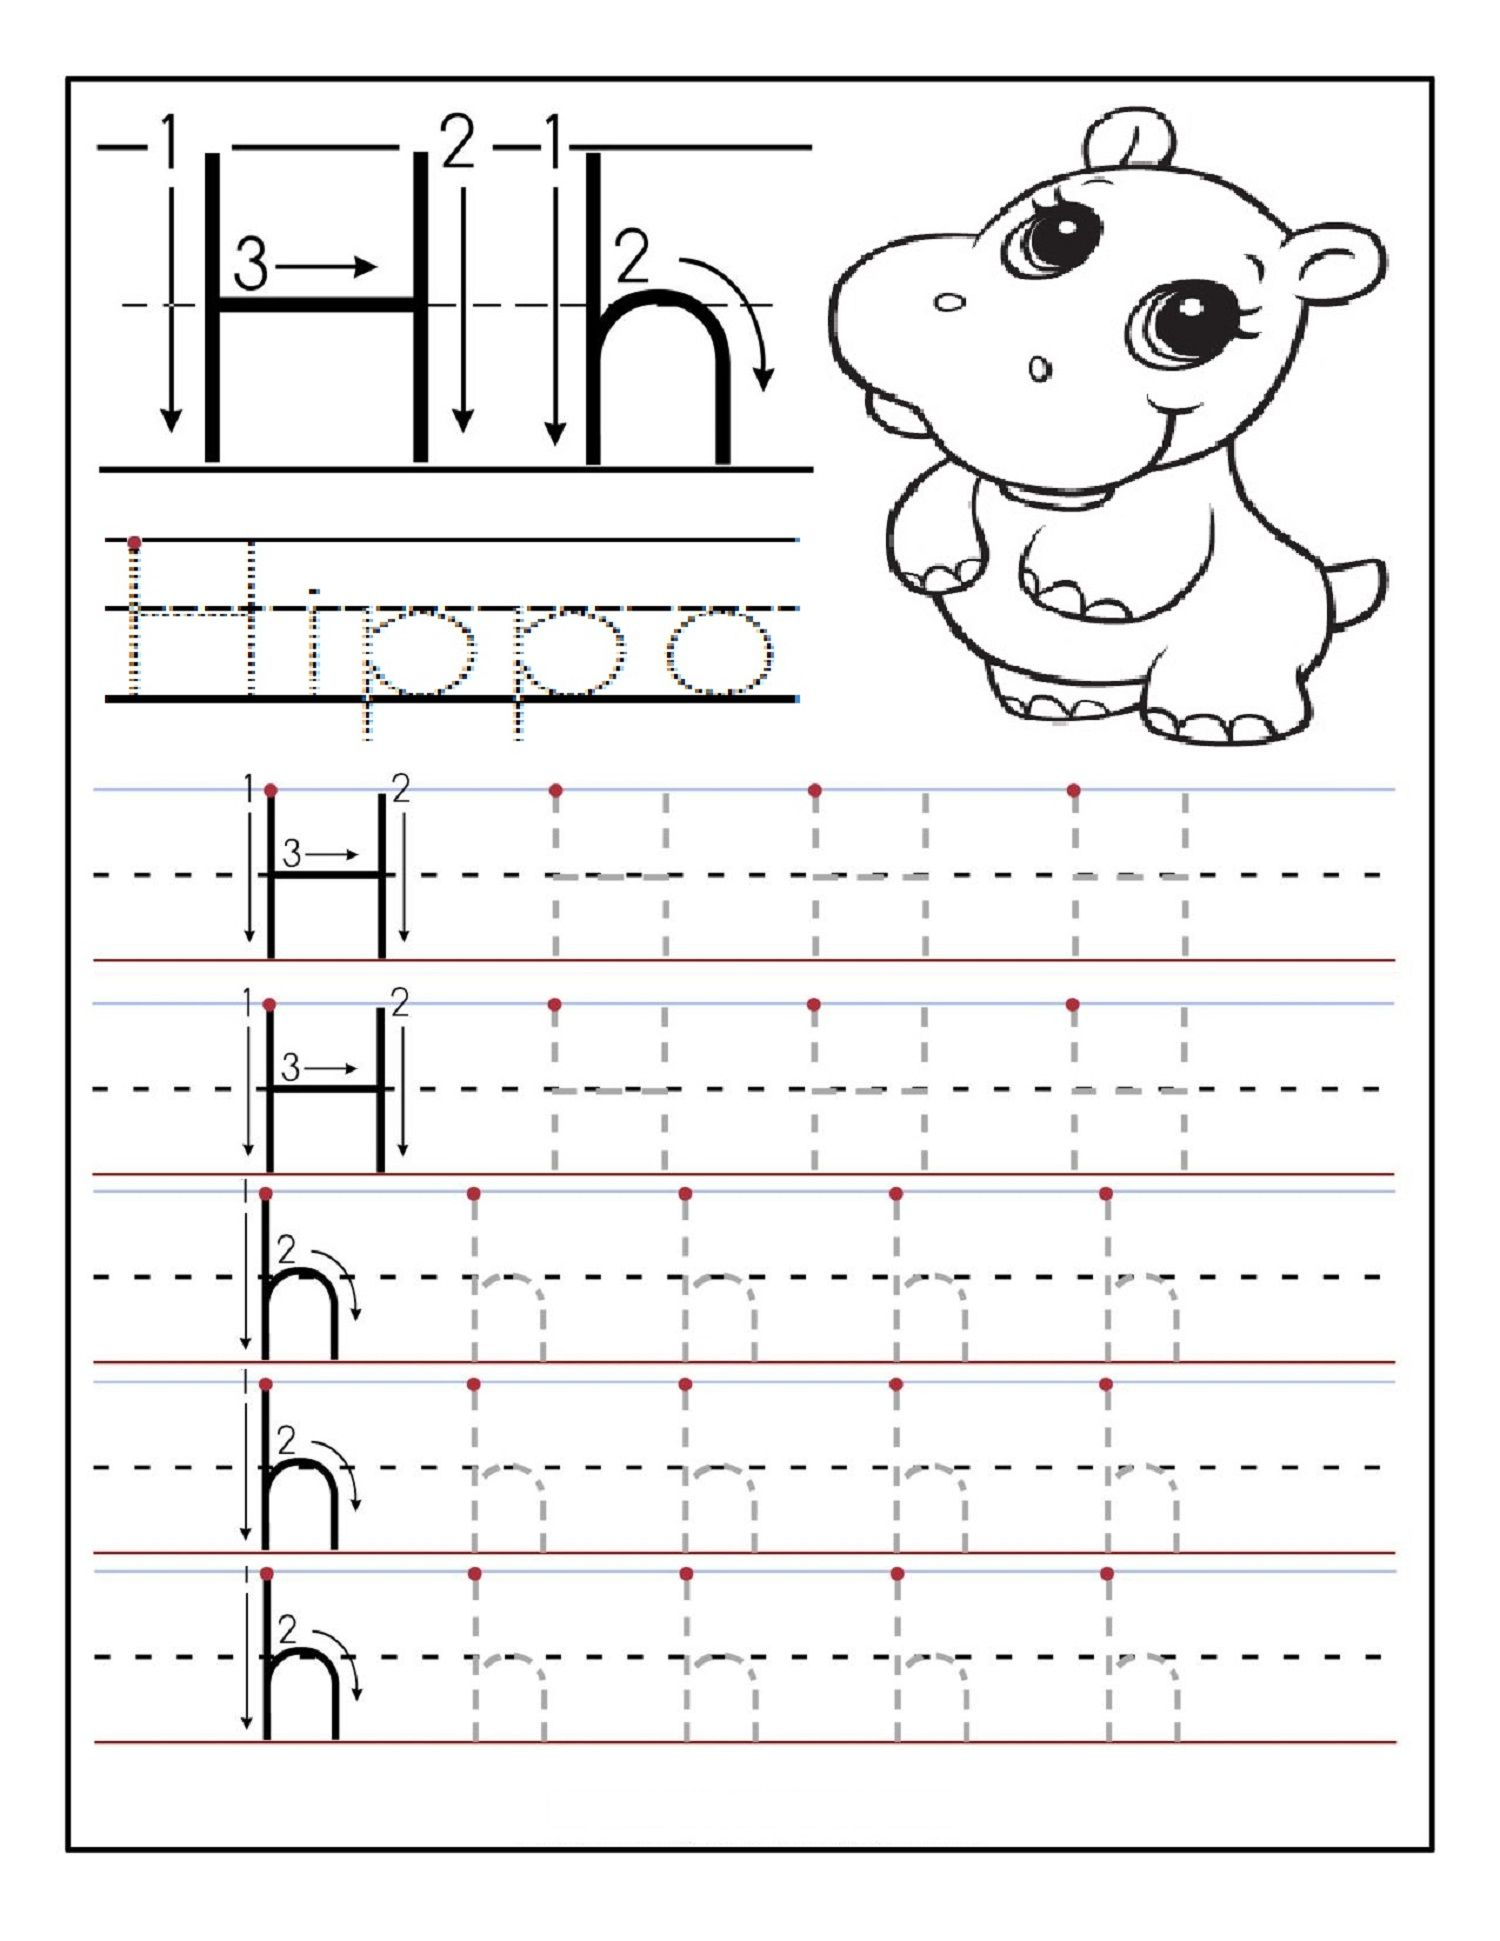 worksheet Traceable Letters traceable alphabet for learning exercise dear joya diya joya